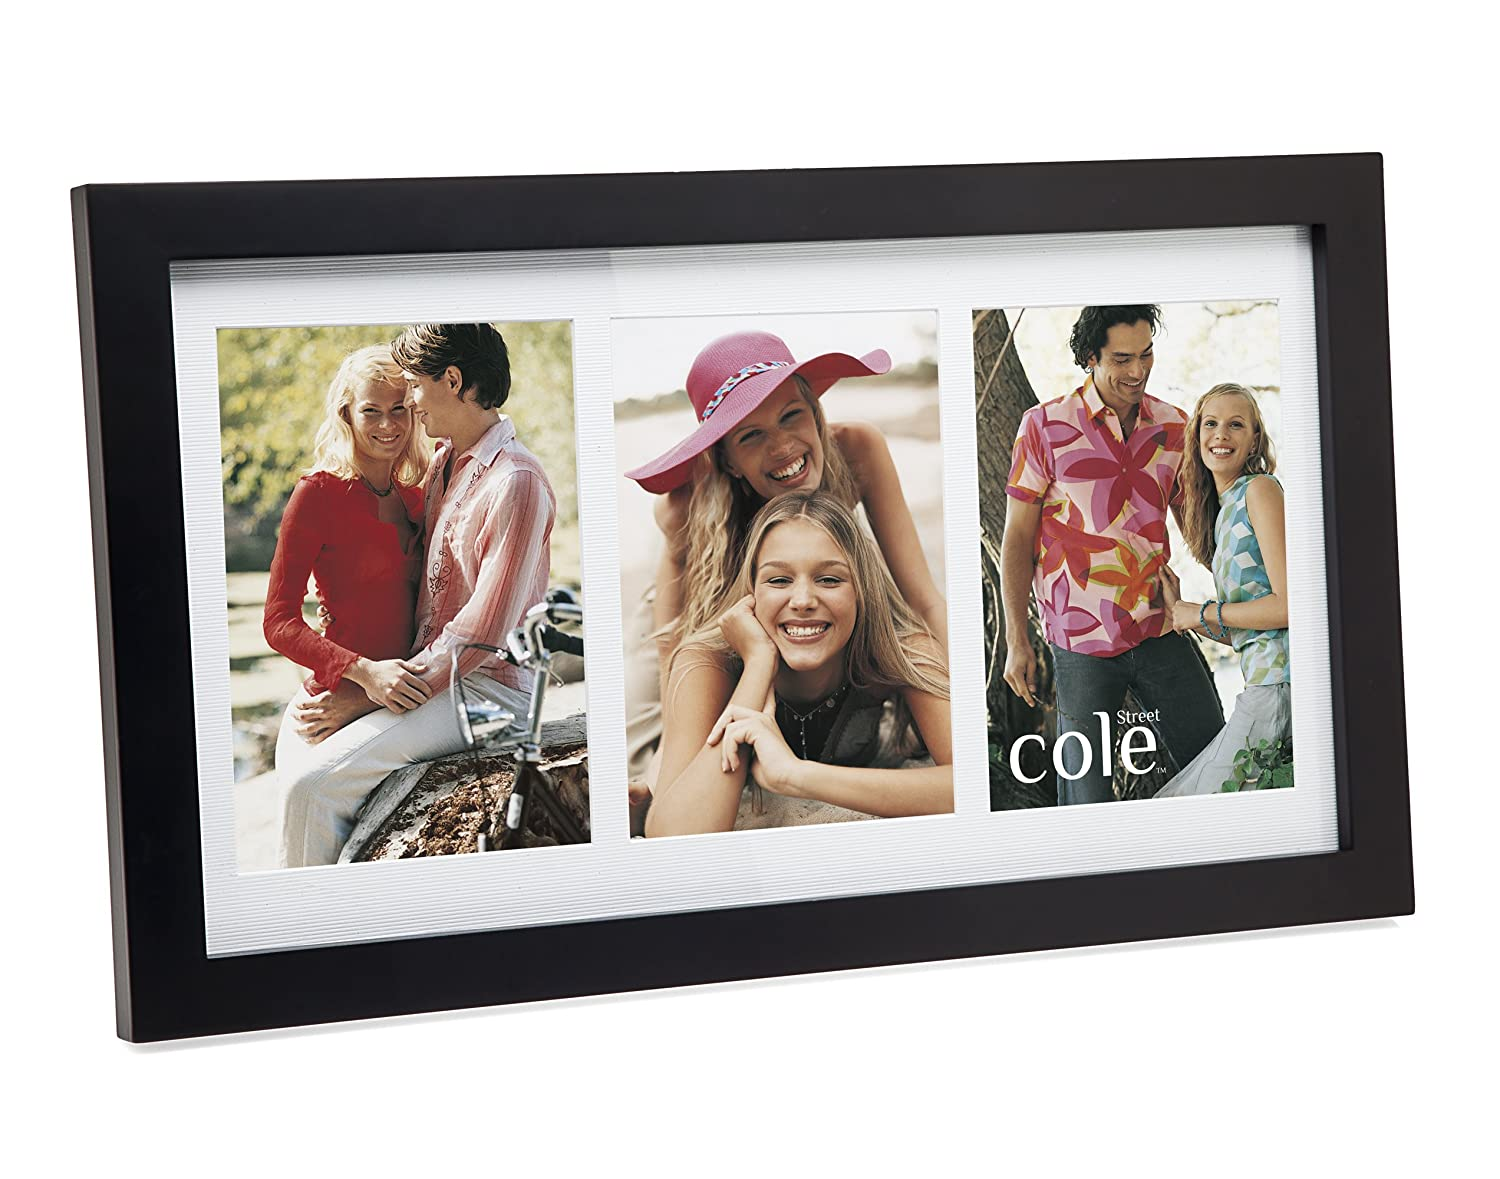 Amazon philip whitney 3 opening 4x6 black wood collage amazon philip whitney 3 opening 4x6 black wood collage picture frame home decor accents jeuxipadfo Gallery